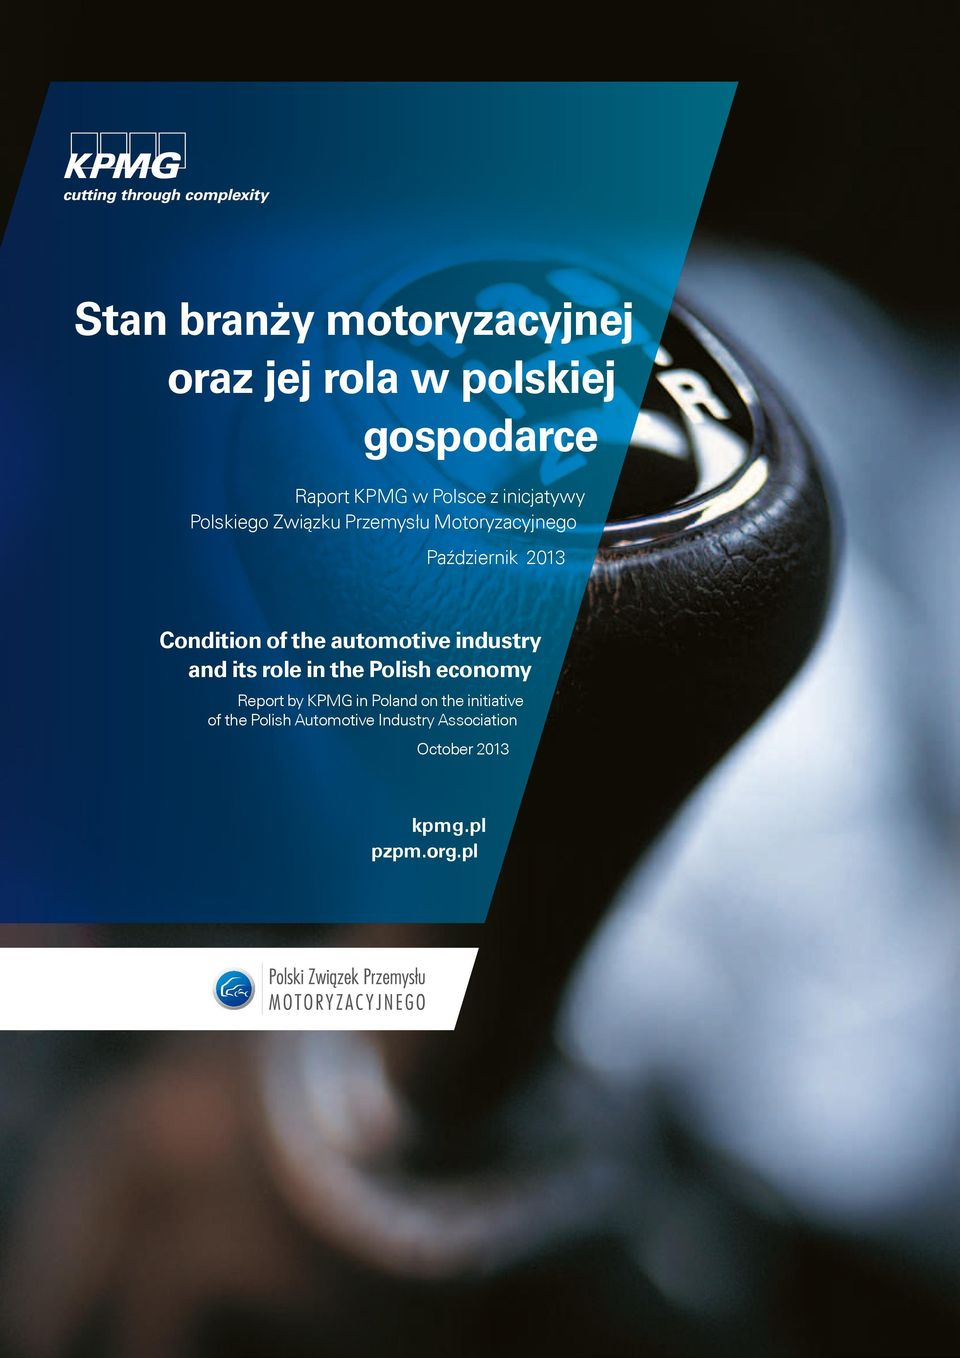 the automotive industry and its role in the Polish economy Report by KPMG in Poland on